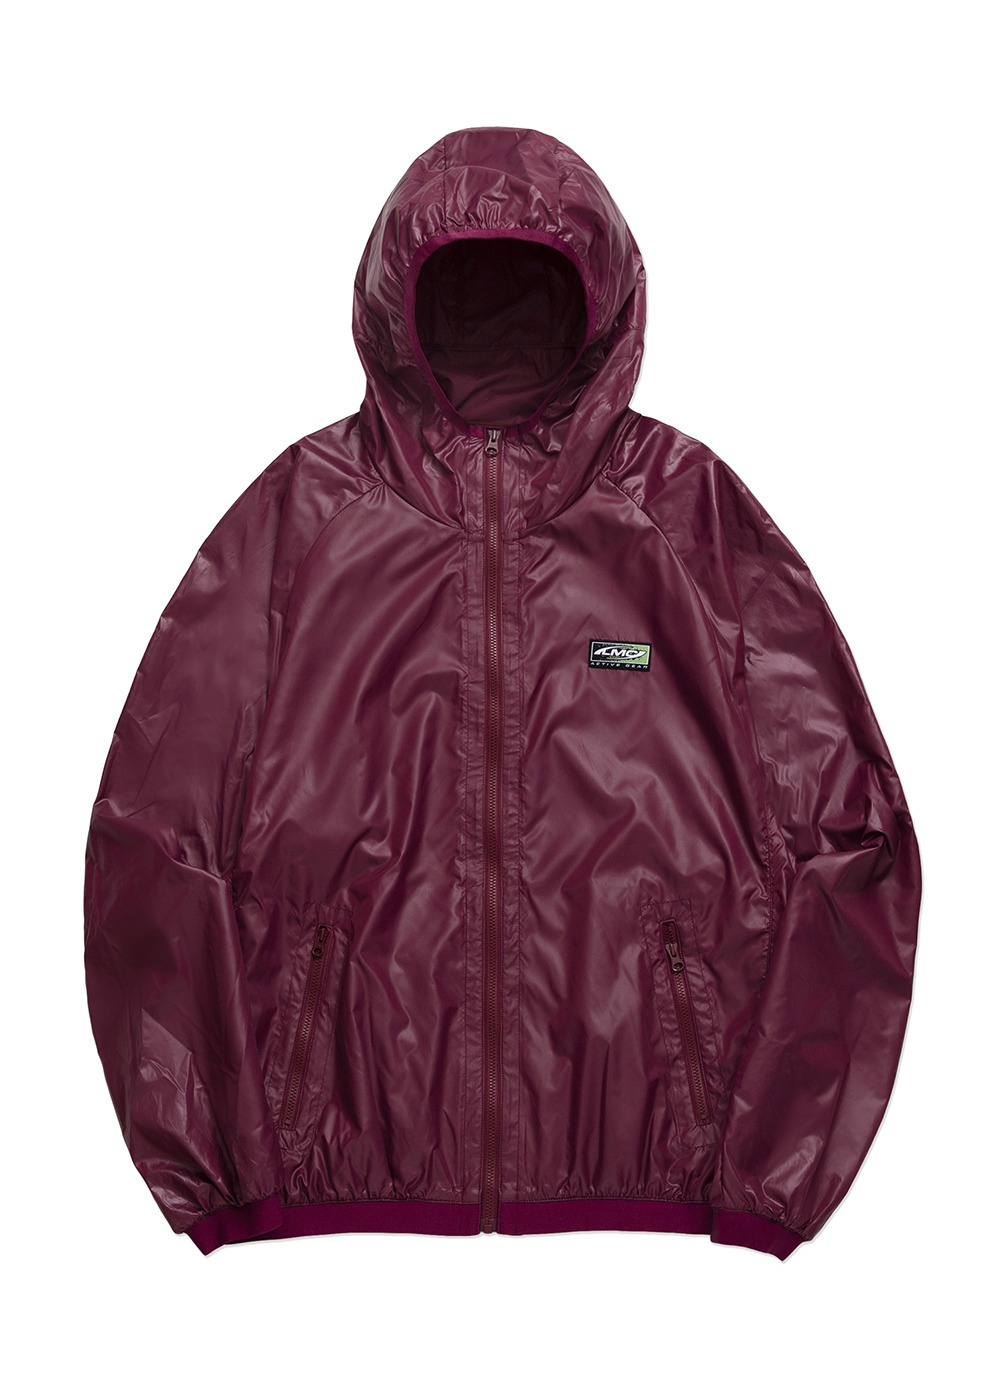 LMC GEAR PACKABLE LIGHTWEIGHT JACKET purple